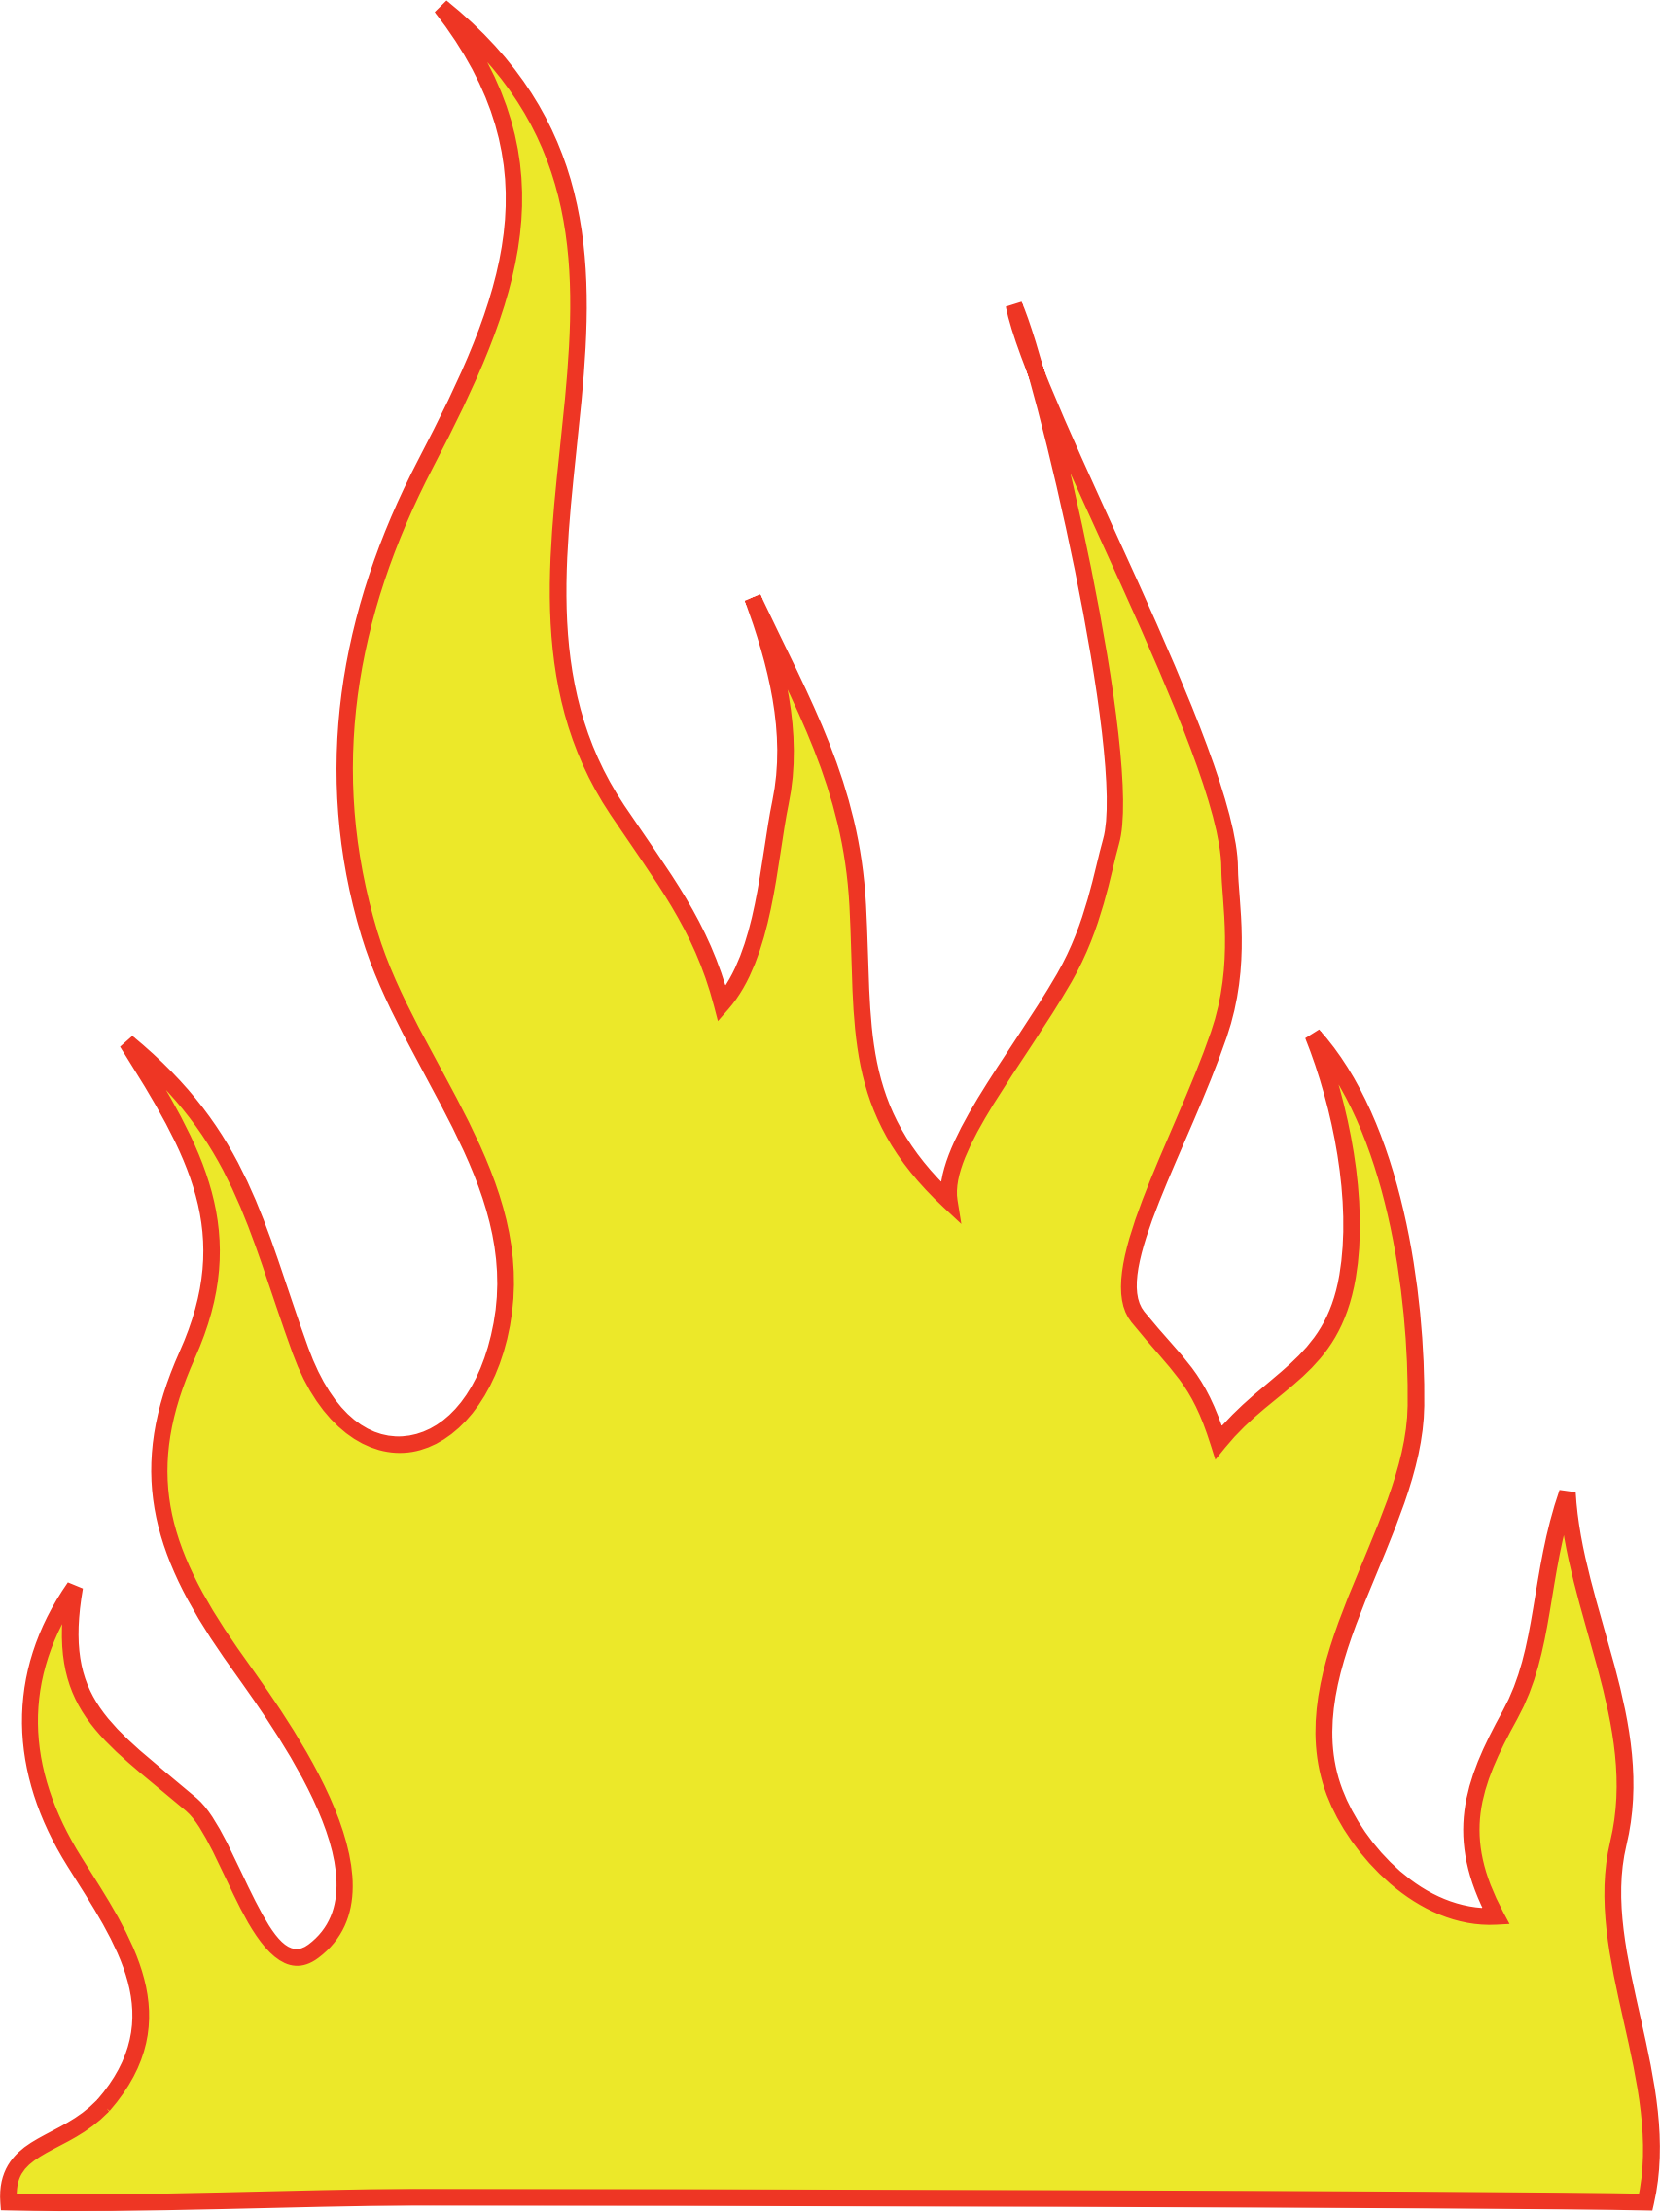 Big image png. Flames clipart simple fire